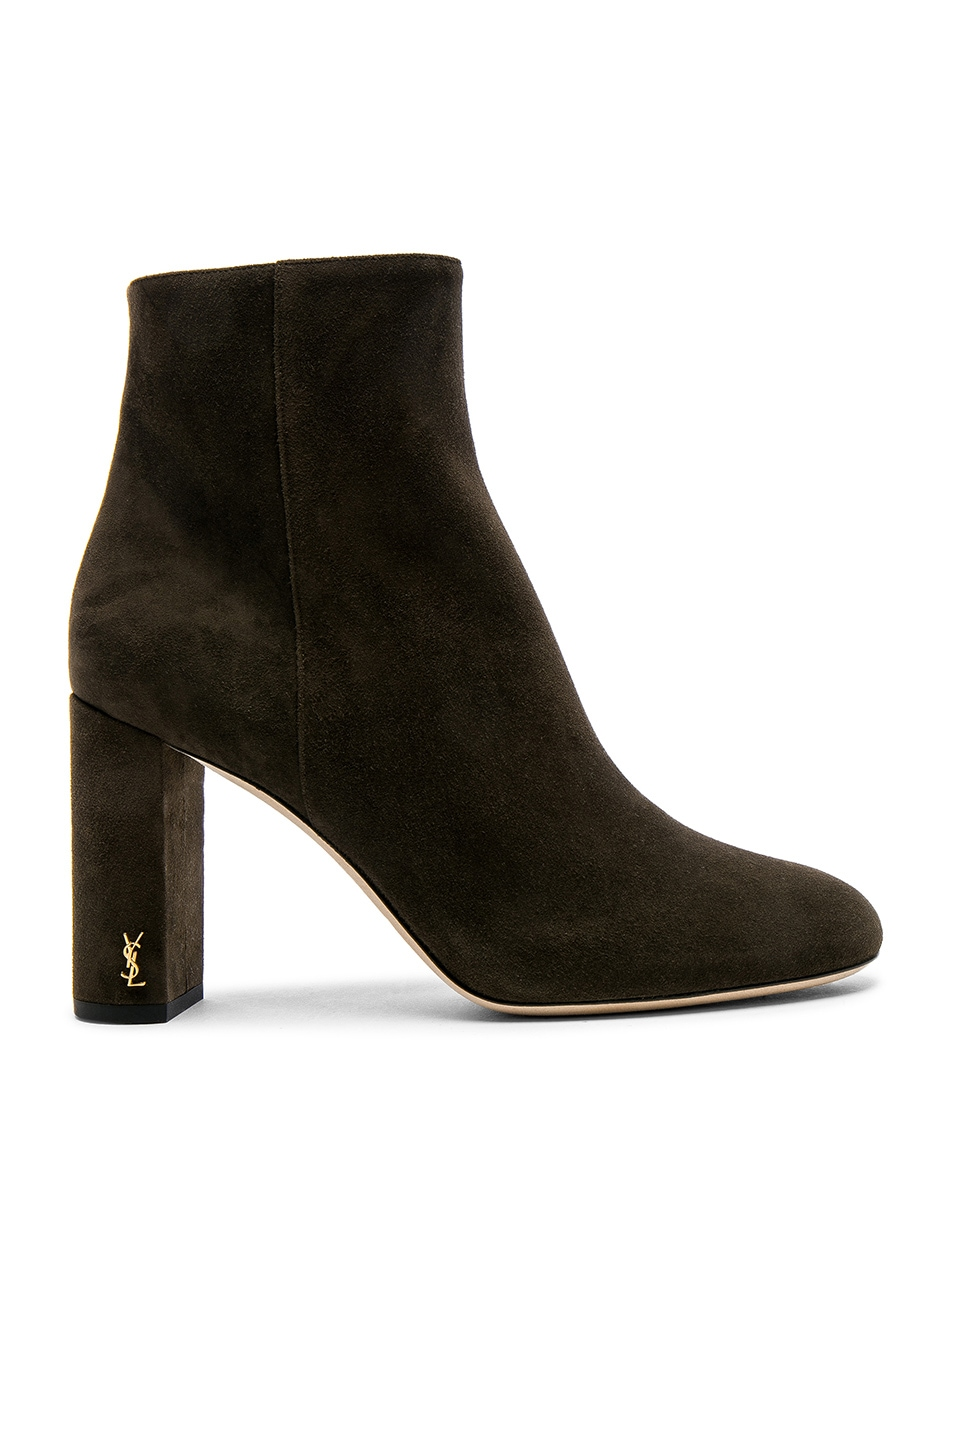 39c50a258a Saint Laurent Suede Loulou Pin Boots in Army Green | FWRD